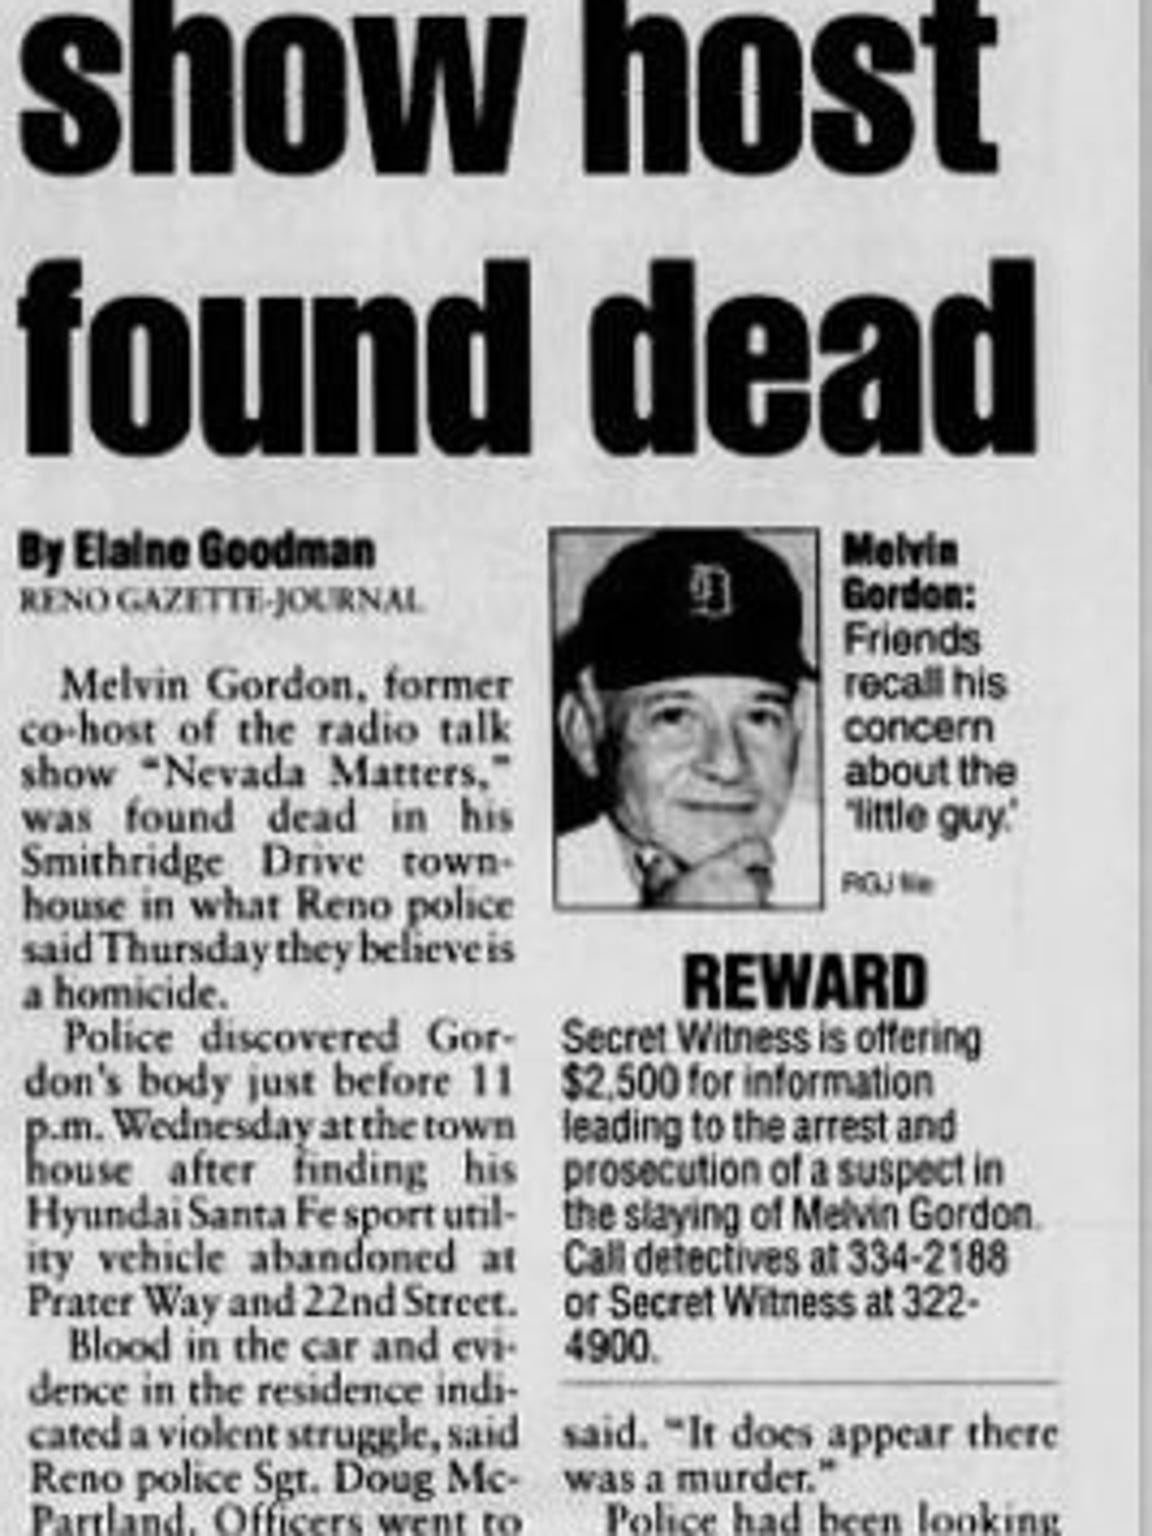 The original article on Mel Gordon's death appeared in the Sept. 27, 2002 edition of the Reno Gazette-Journal.